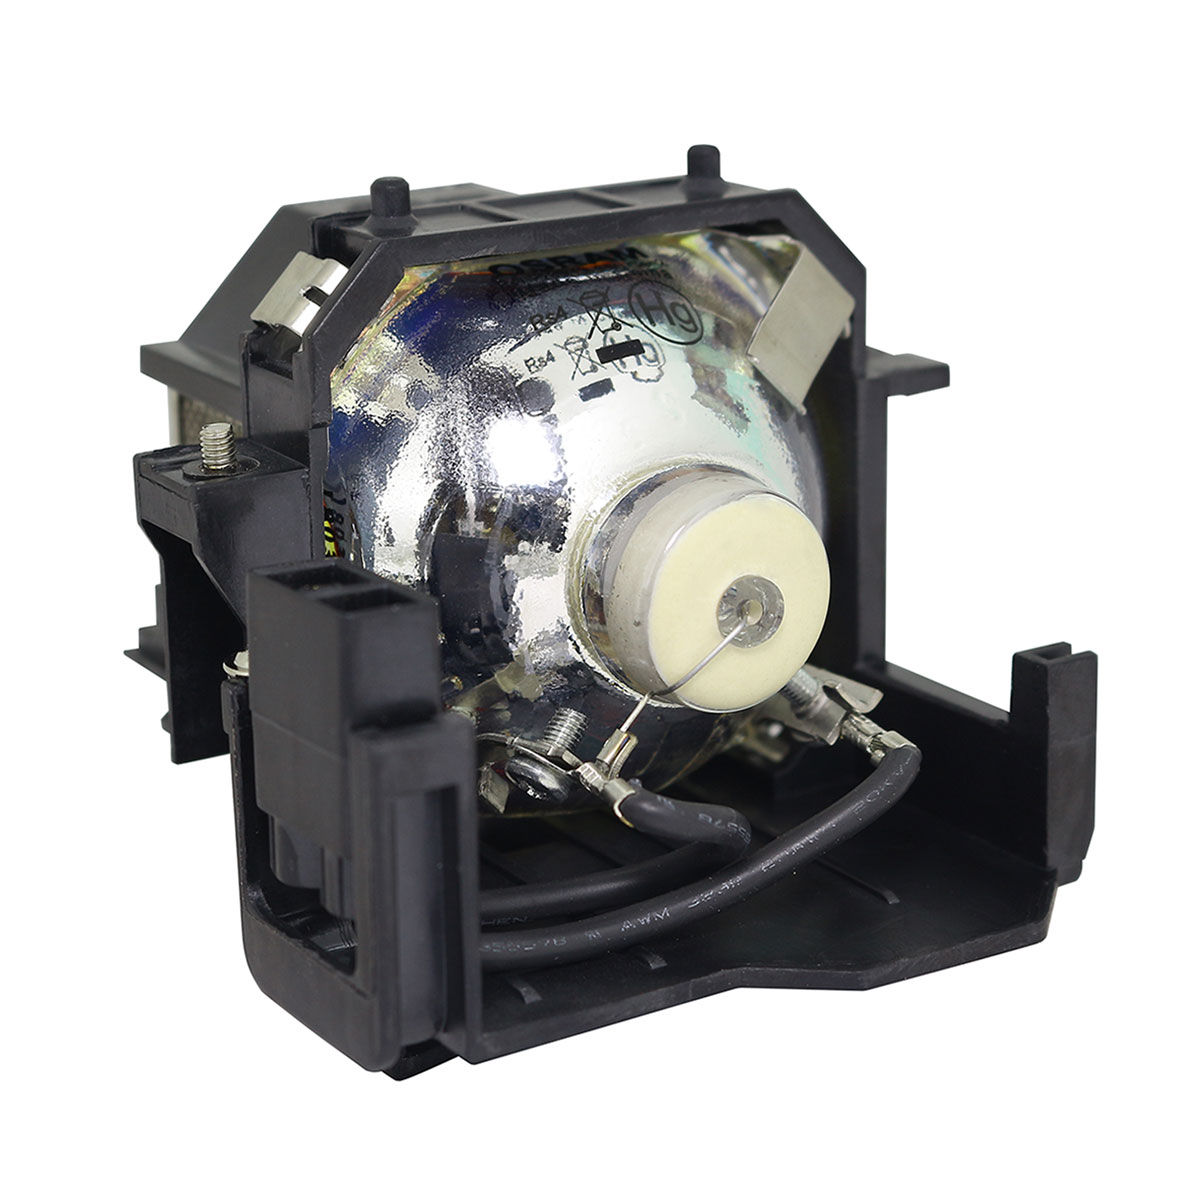 Osram Elplp41 Replacement Bulb Cartridge For Epson Ex30 Projector Lamp 677891175768 Ebay